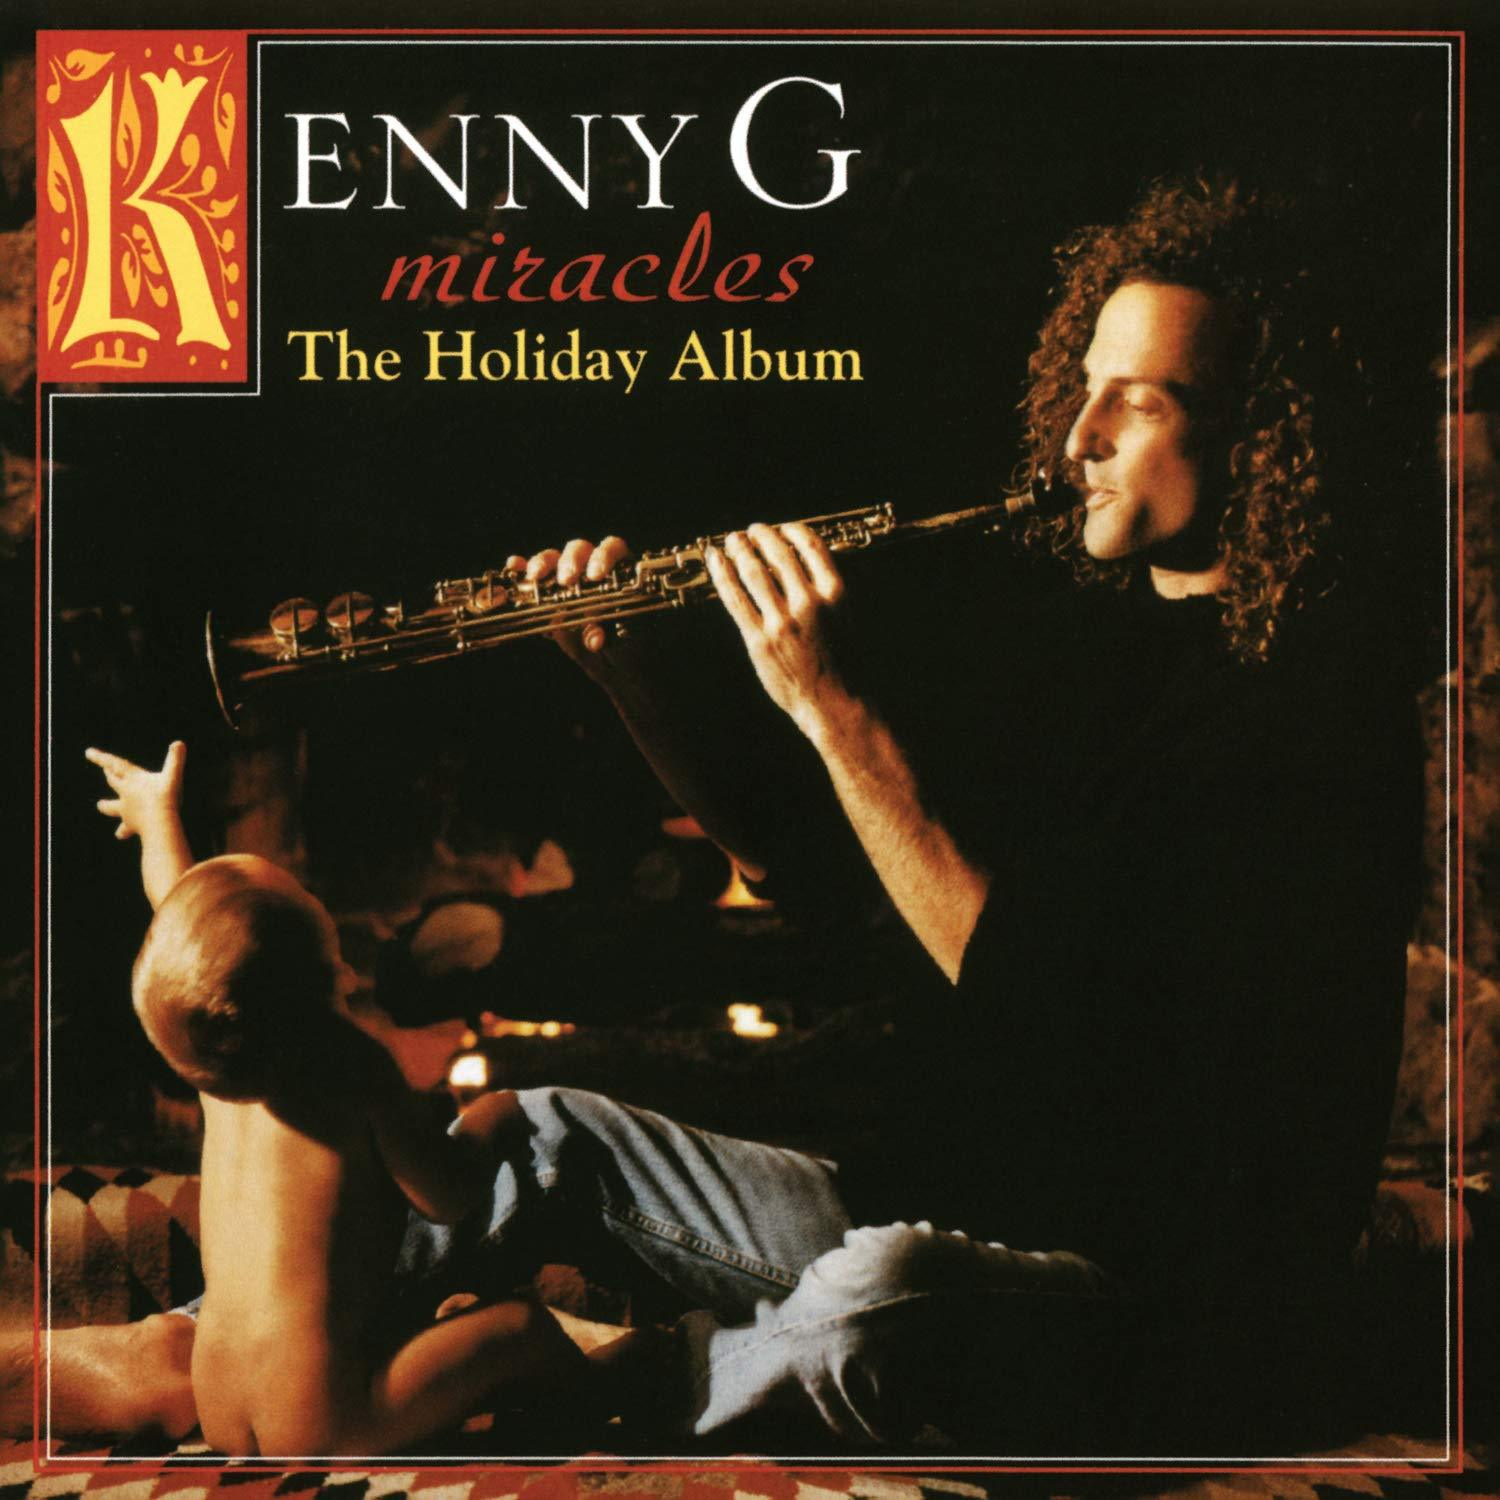 Kenny G - Miracles: A Holiday Album [LP] - Urban Vinyl | Records, Headphones, and more.